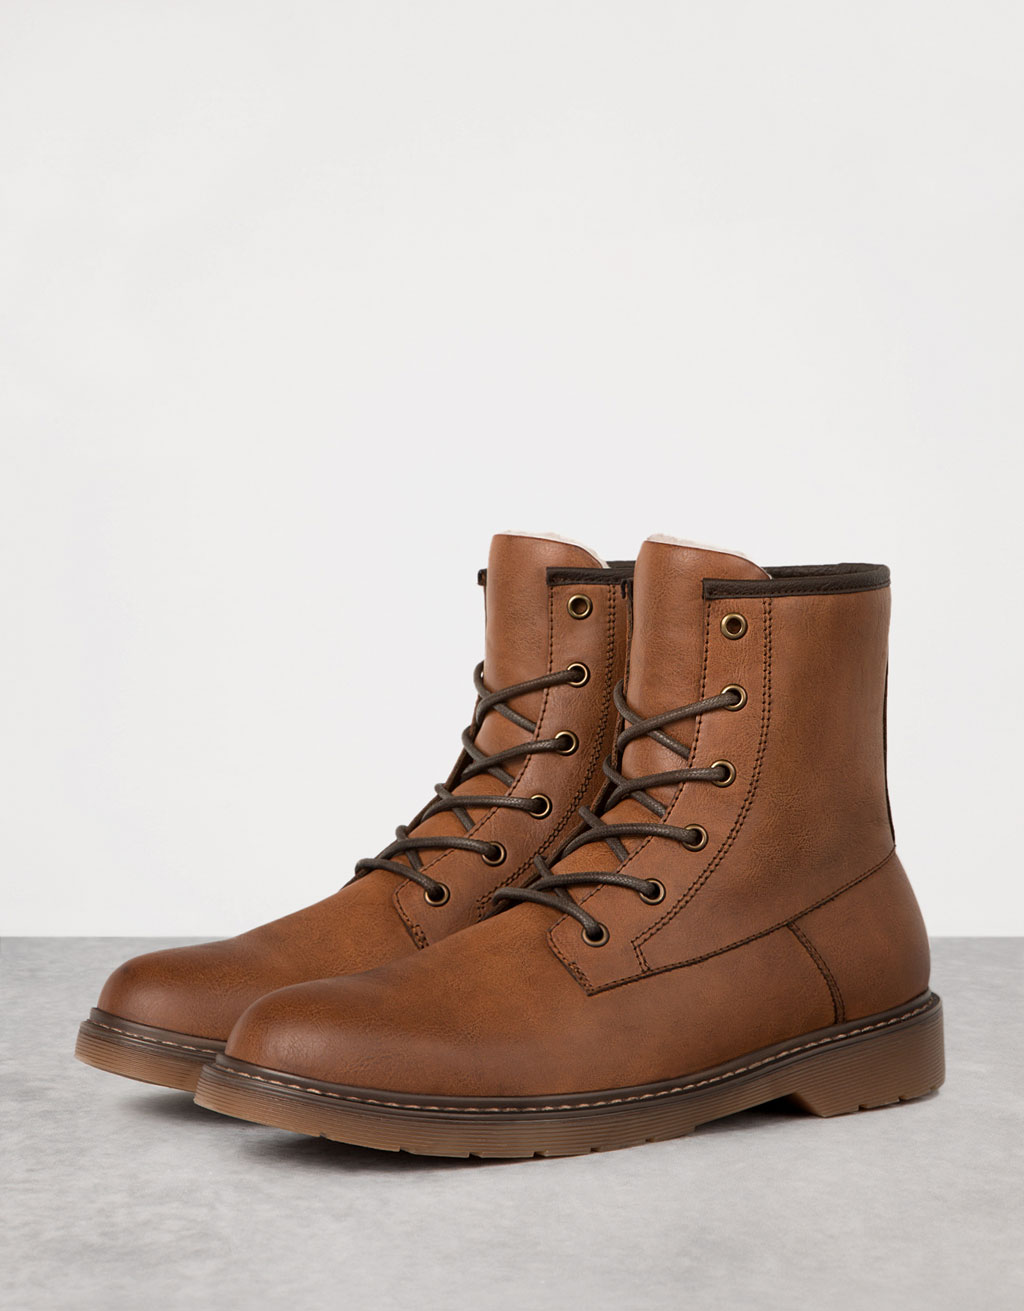 Men's fur-lined lace-up dressy boots